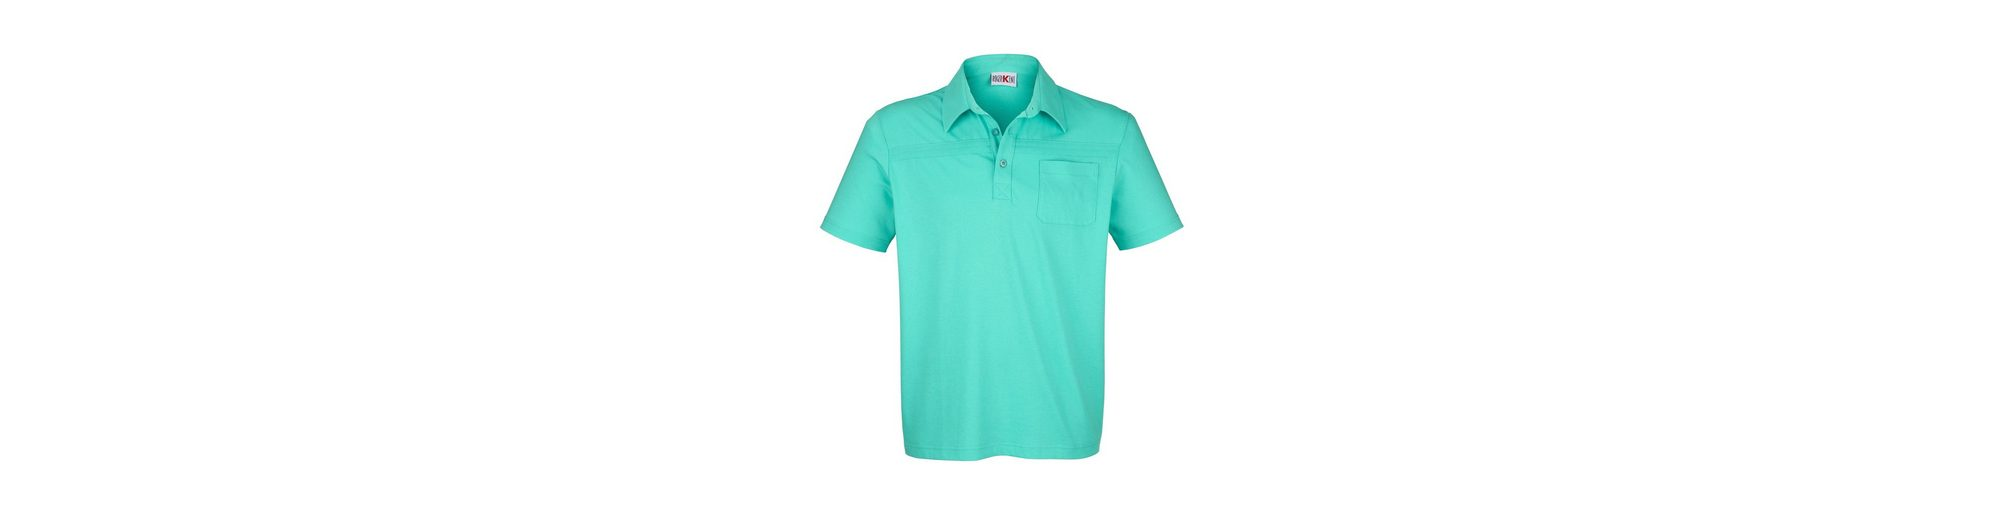 Roger Kent Poloshirt in sommerlicher Farbe Perfekte Online GmiNpcH